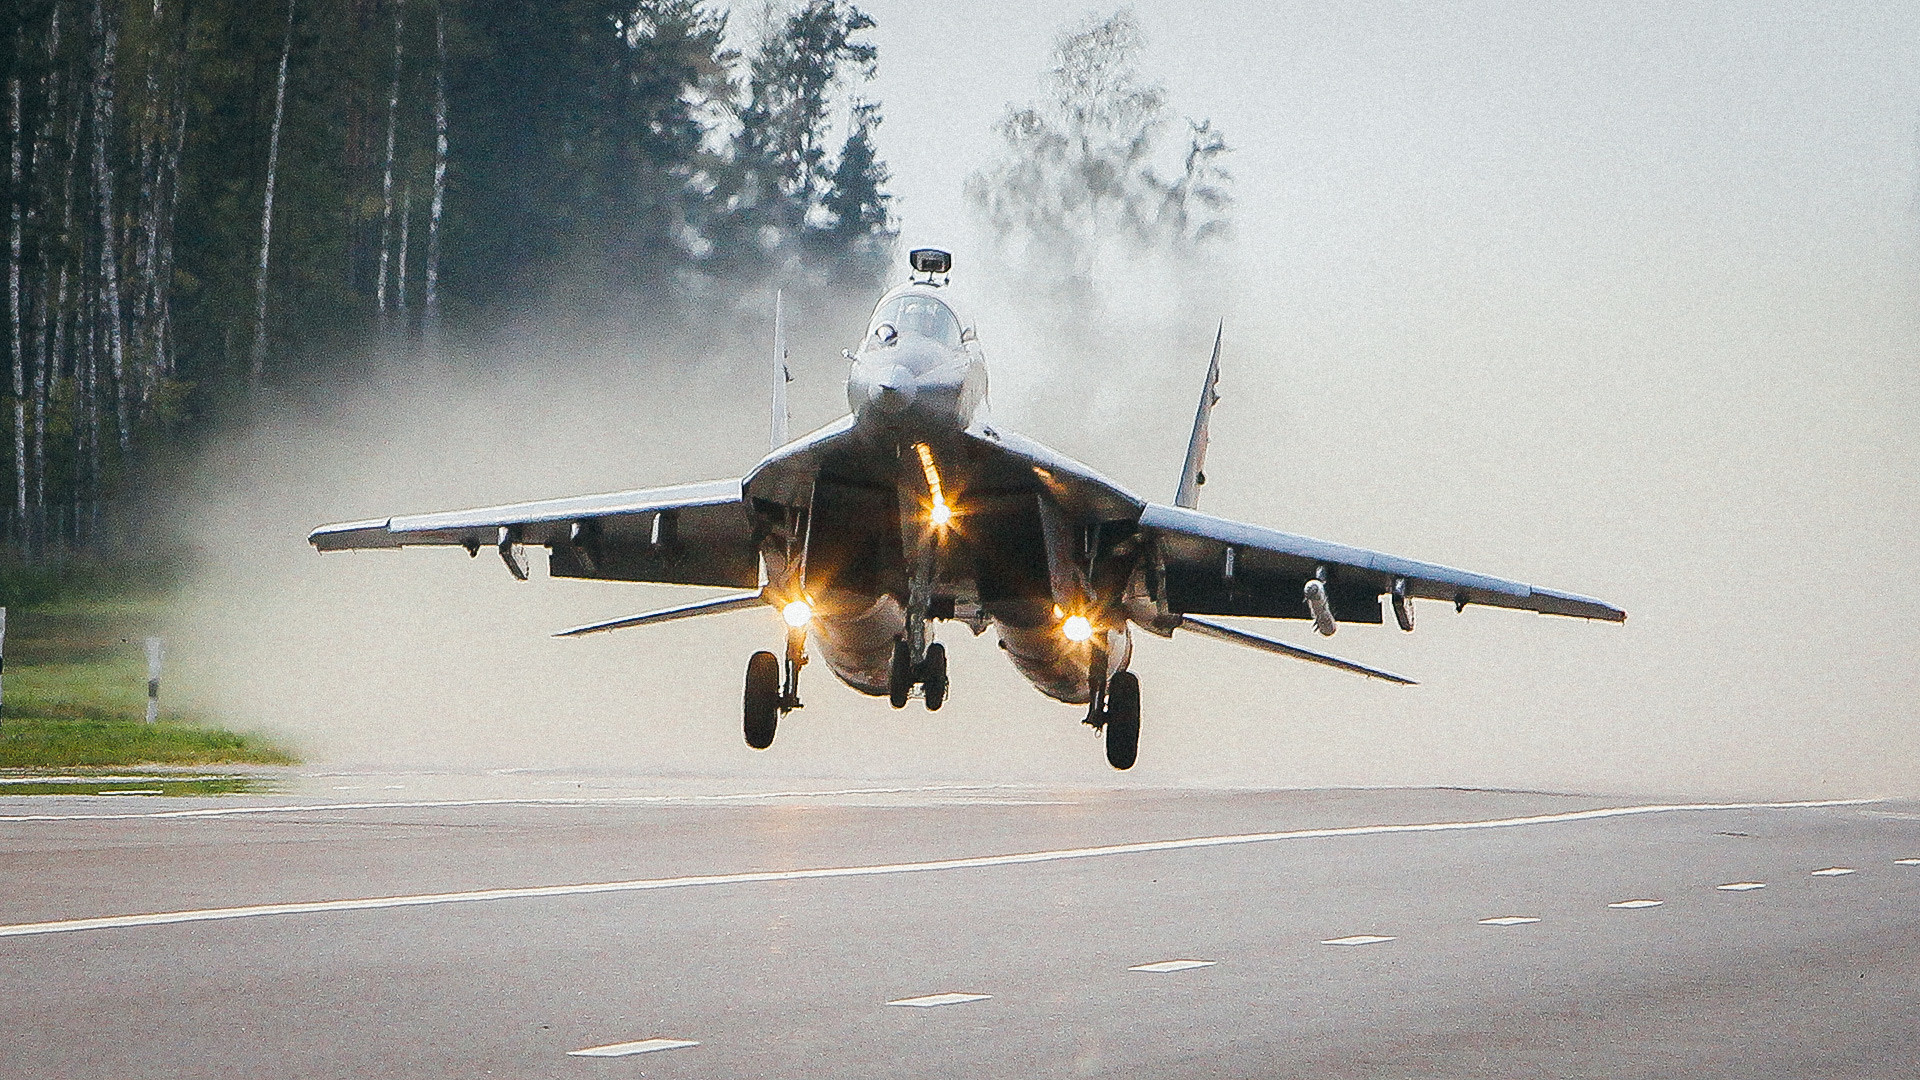 The MiG-29 has unique characteristics that allow it to perform unthinkable aerobatic maneuvers